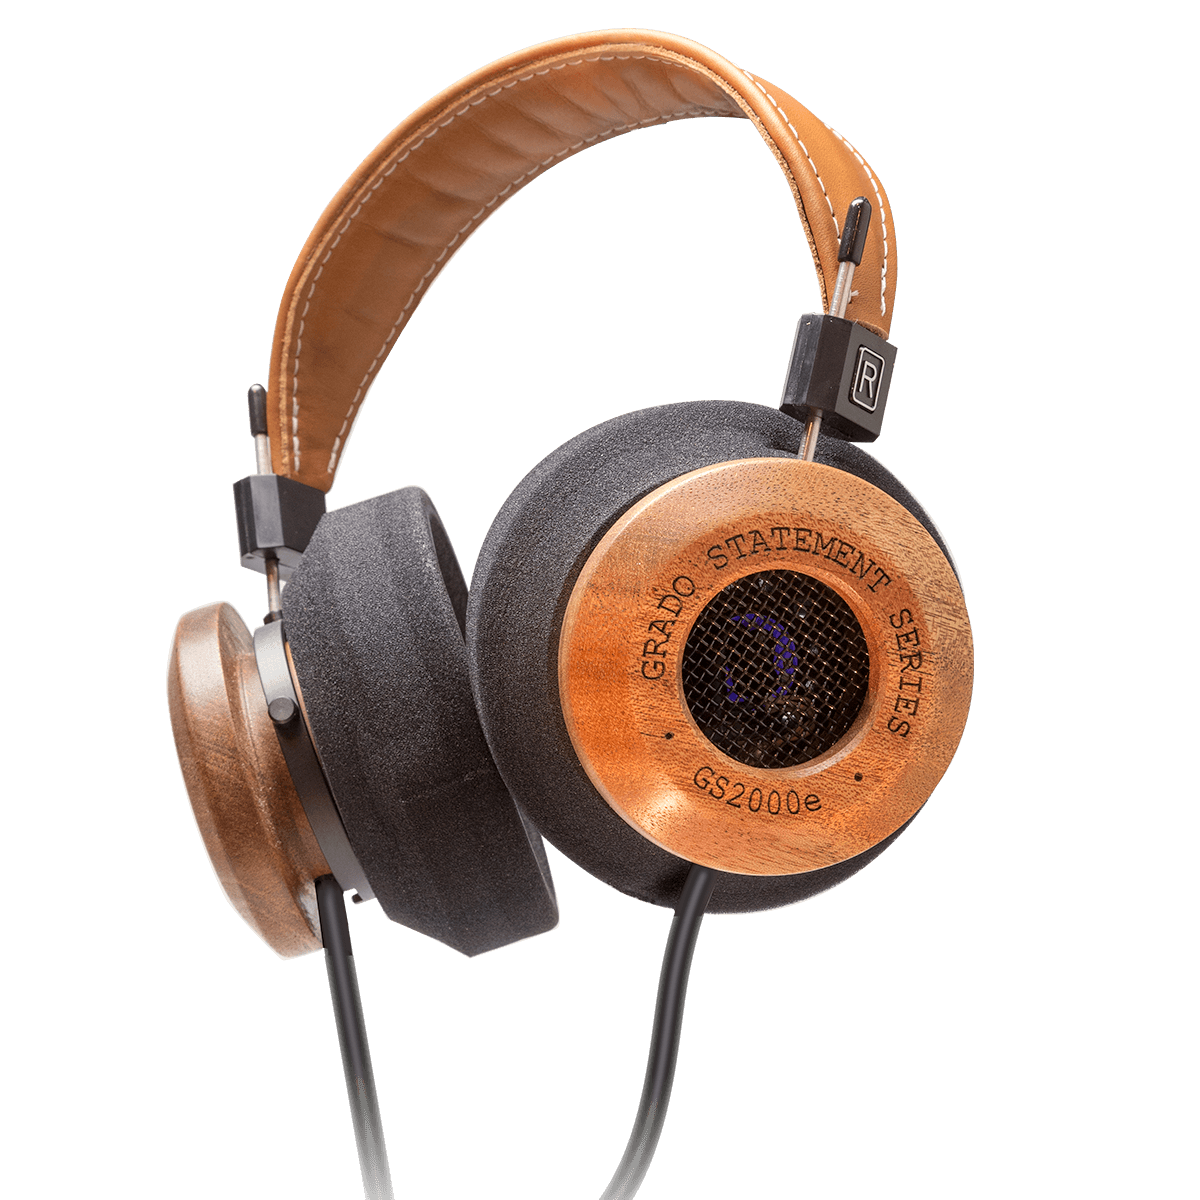 Grado Labs Statement Series GS2000e Open Headphones